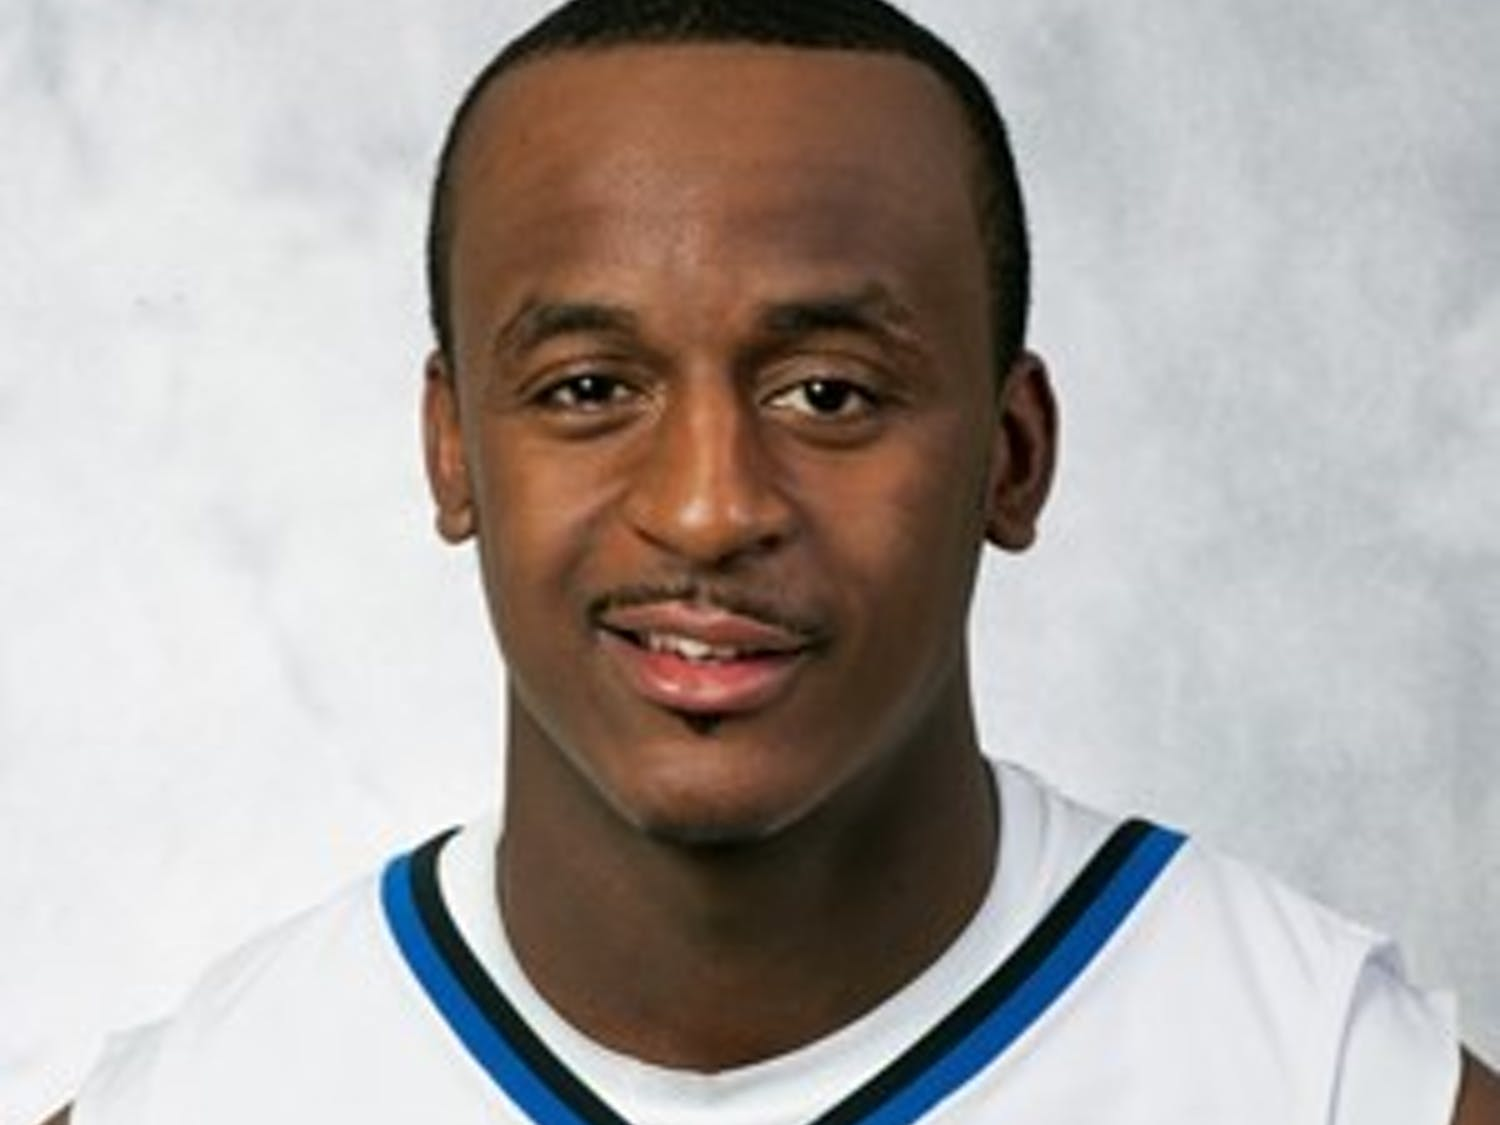 Rodney Pierce played for the Bulls men's basketball team from 2007-2010, averaging 18.4 points during his senior year.